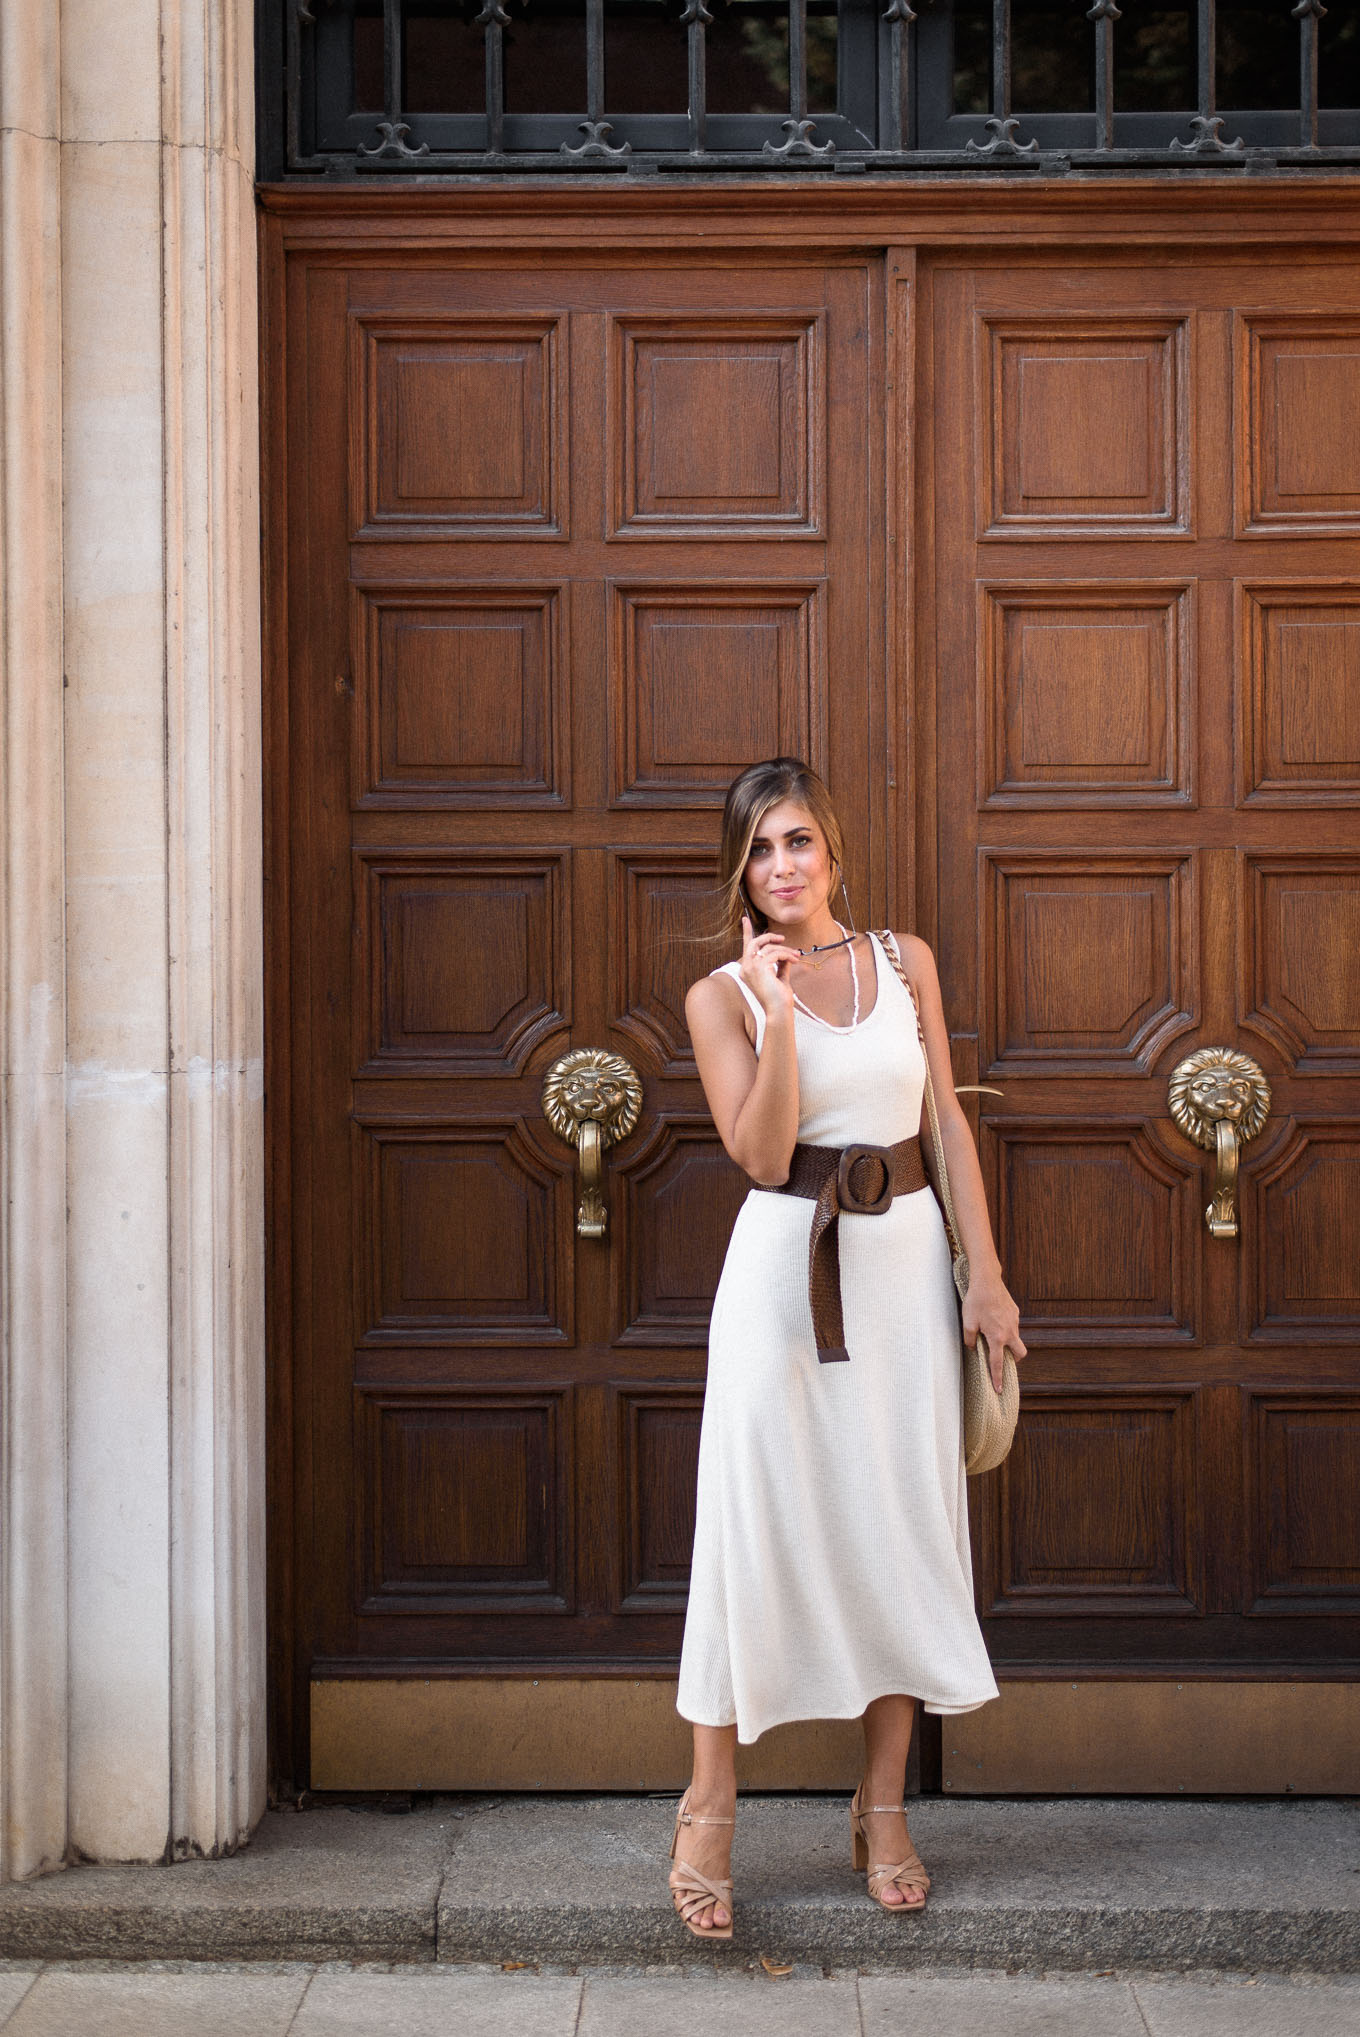 Bulgarian fashion blogger wearing white dress